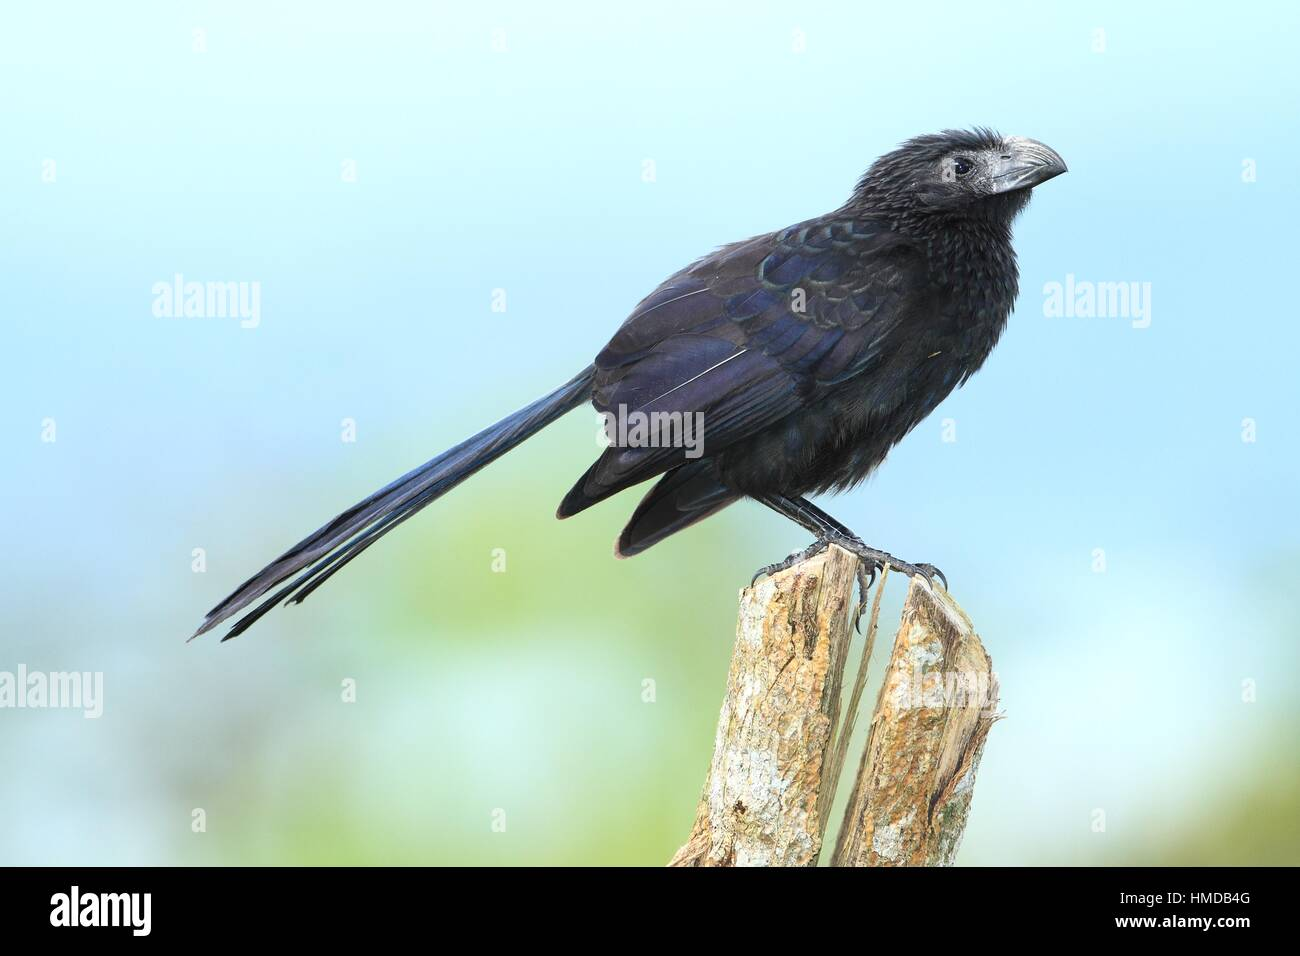 Groove-billed Ani (Crotophaga sulcirostris), Volcán Arenal National Park, Costa Rica. - Stock Image